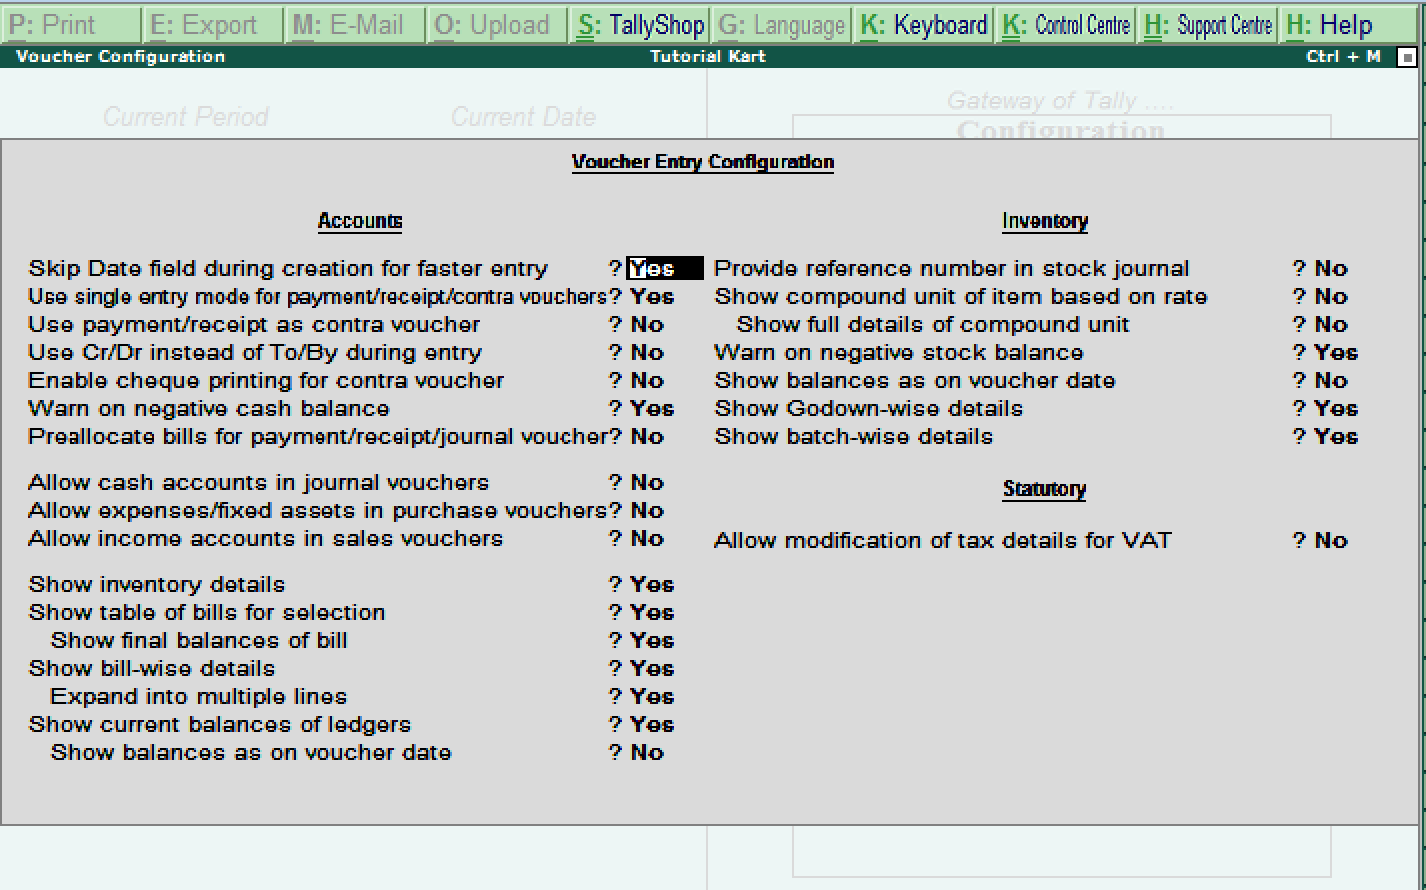 Voucher Entry Configuration in Tally